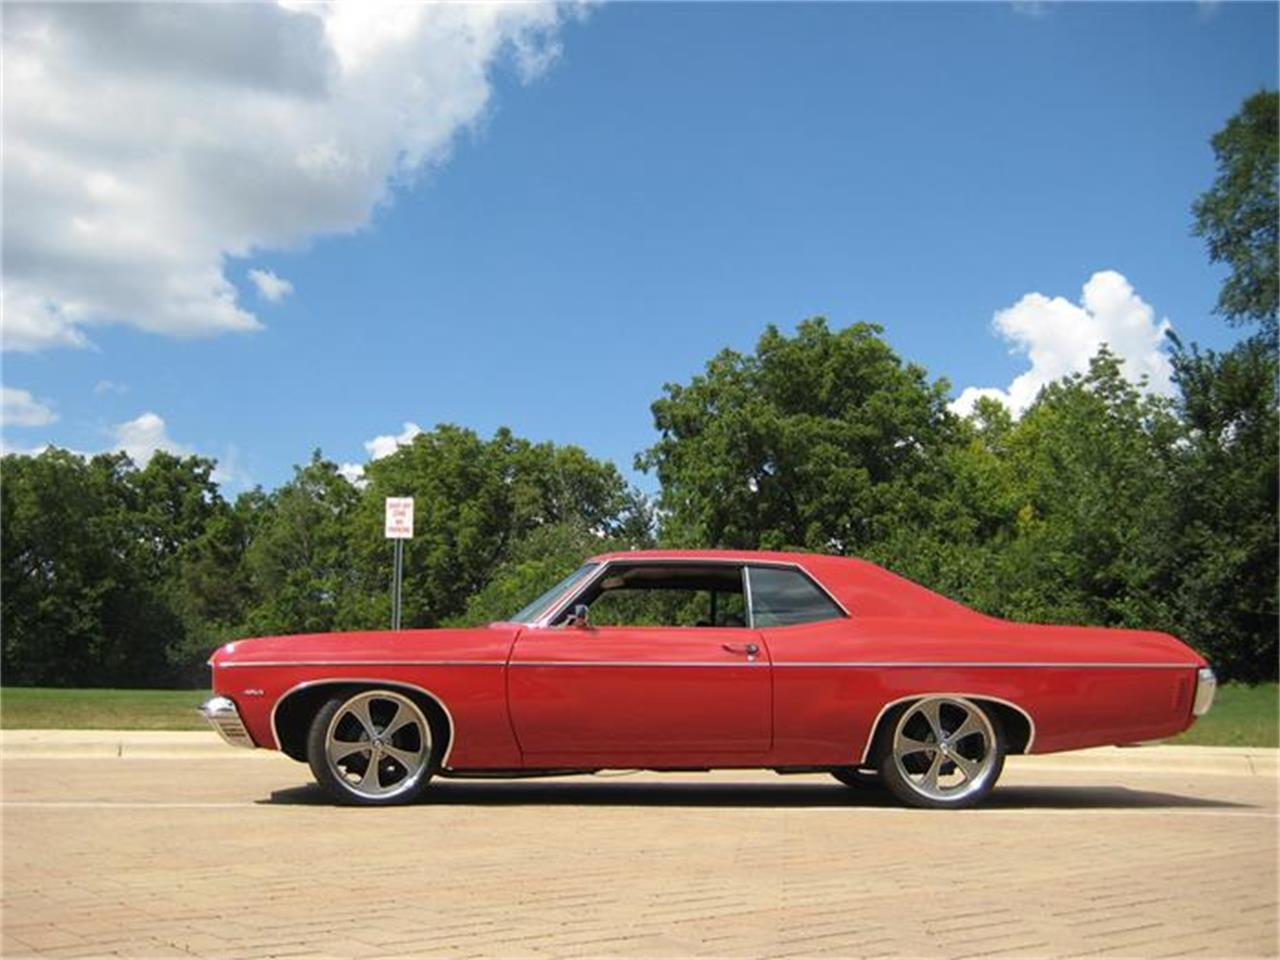 Large Picture of '70 Chevrolet Impala located in Illinois Offered by Classic Auto Haus - F45R